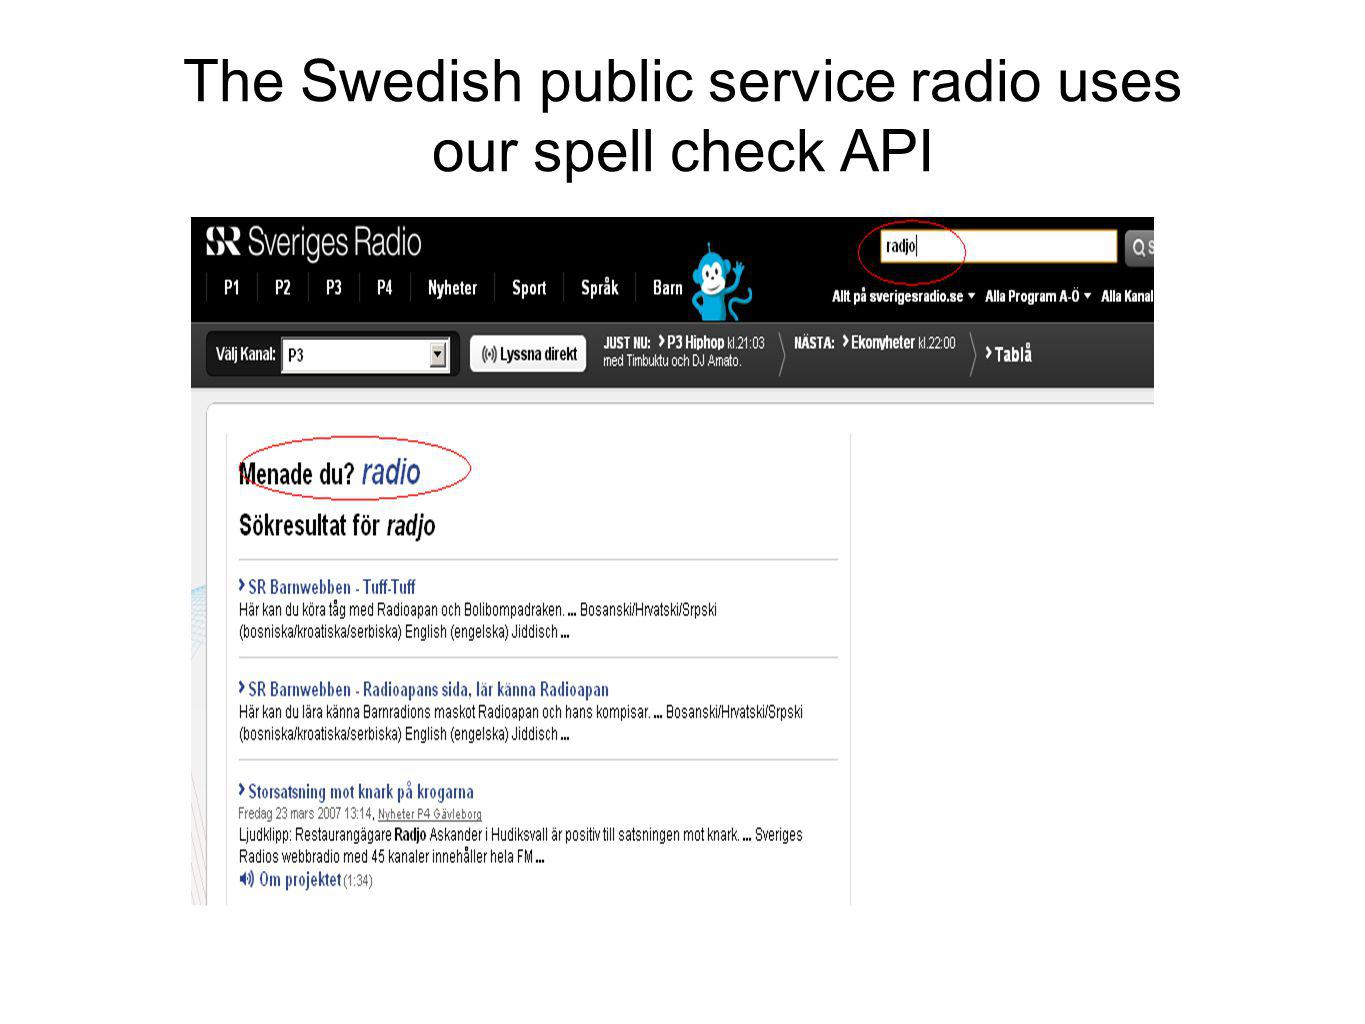 The Swedish public service radio uses our spell check API